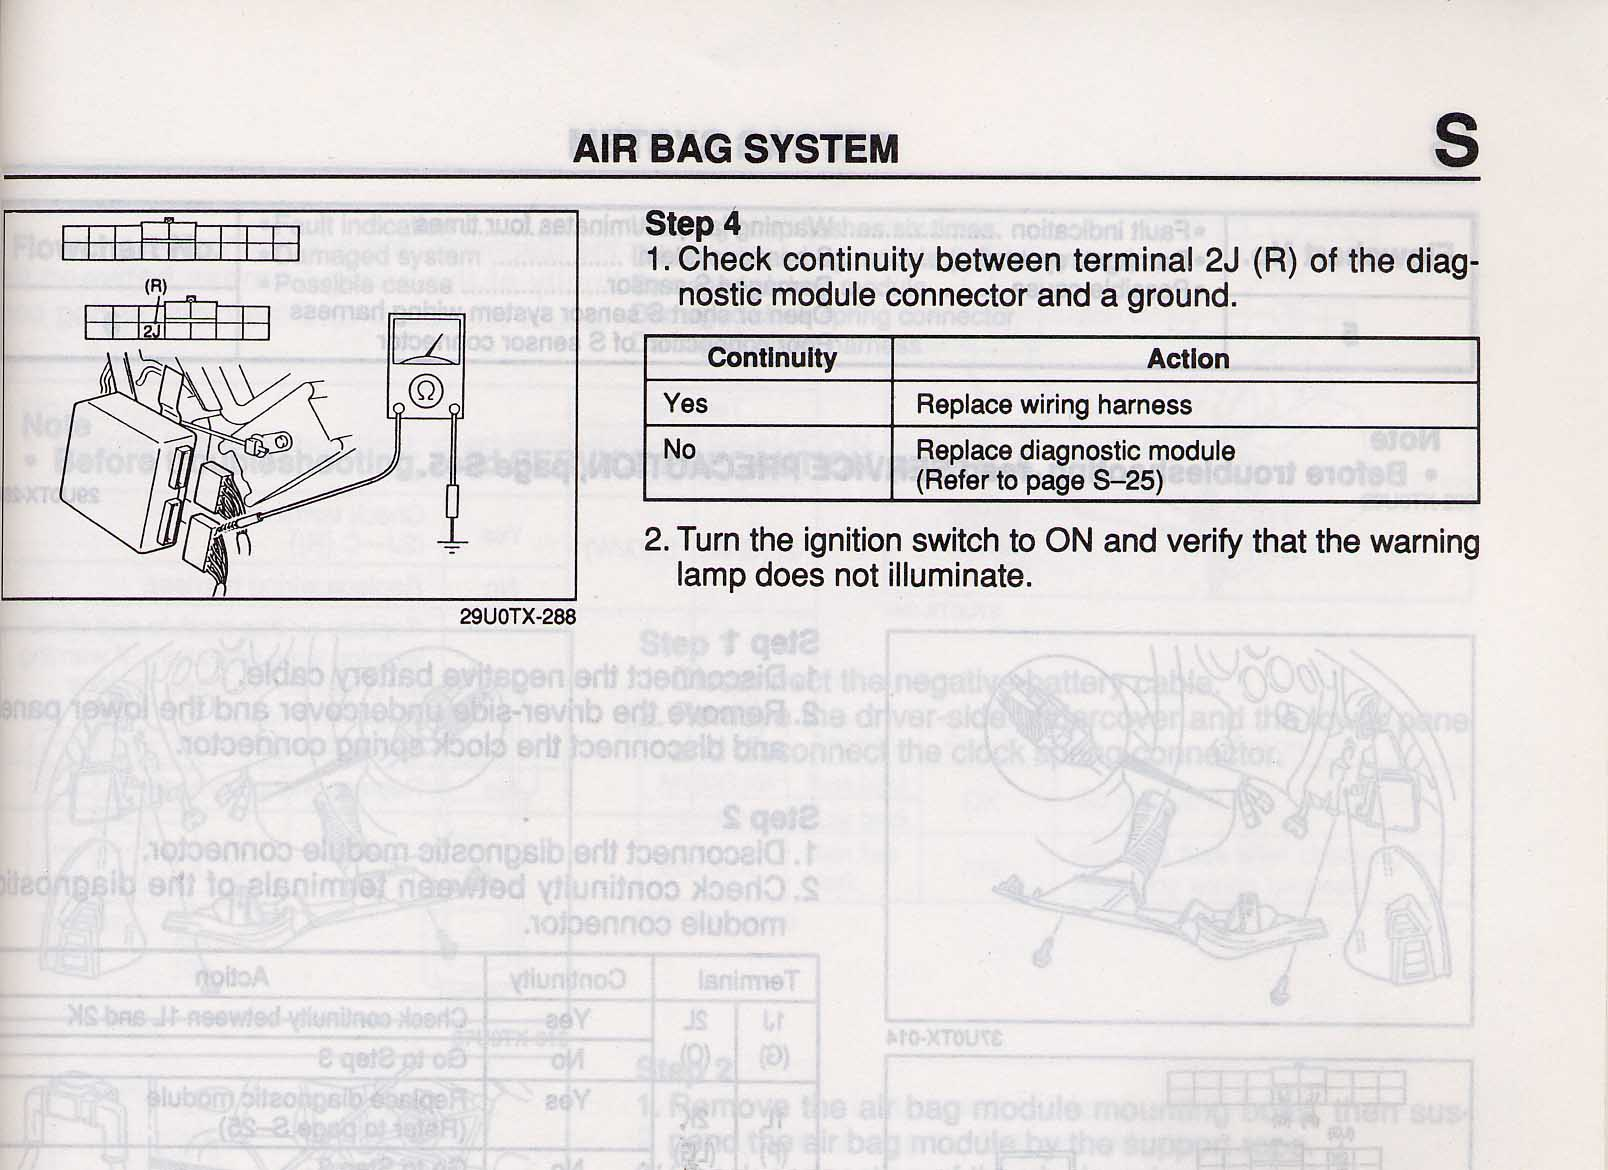 Airbag Light Flashes 10 Times Then Pauses And Repeats